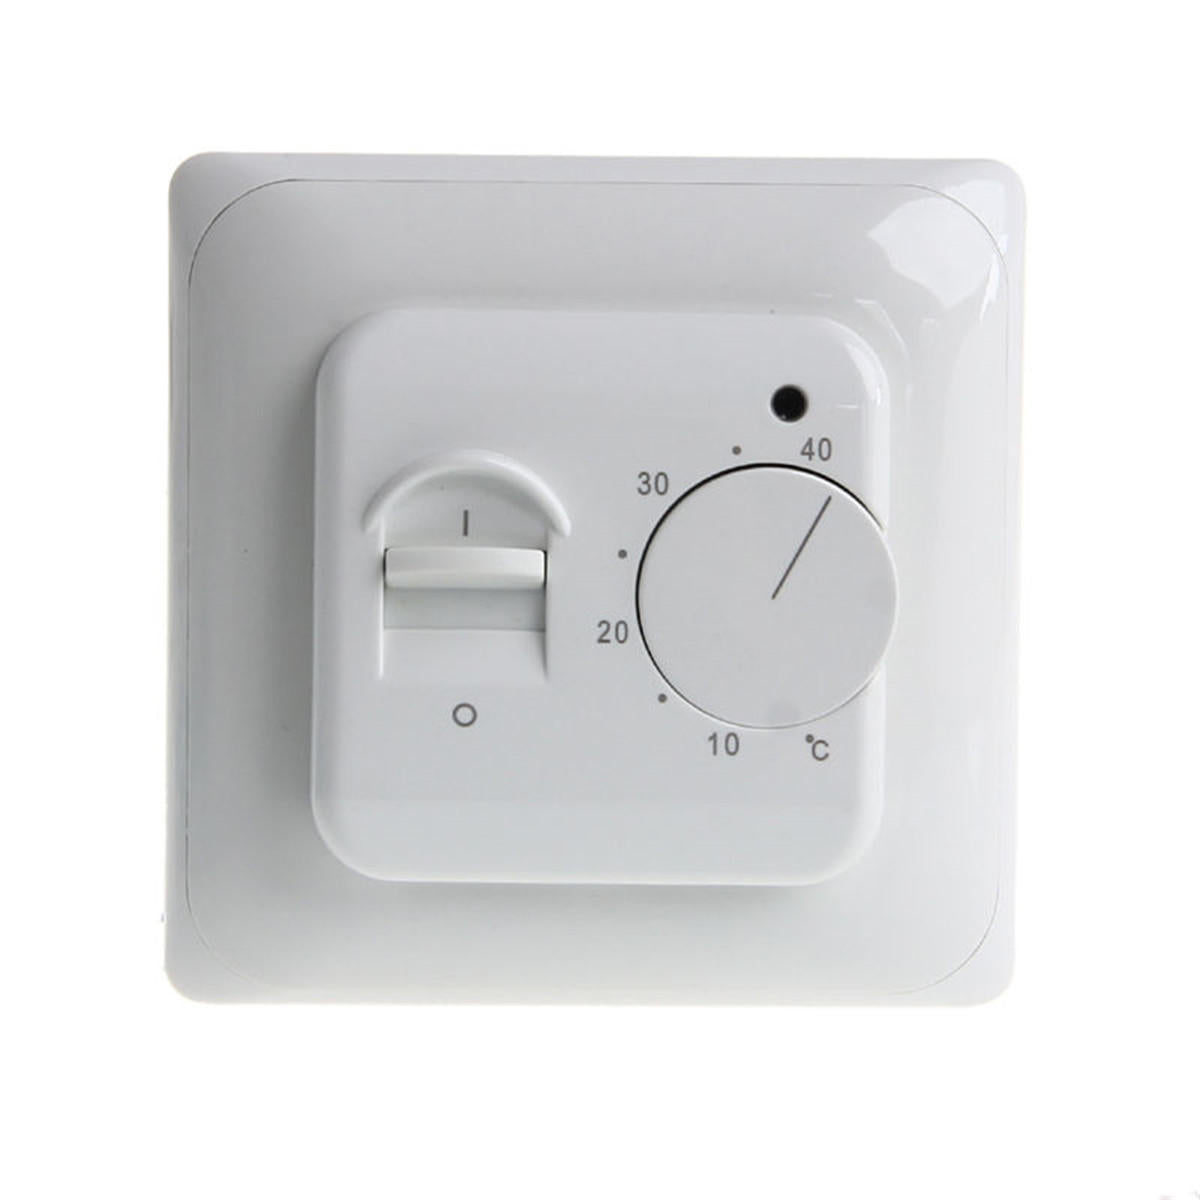 Wil je alles weten over Floor Heating Thermostat Air Condition Temperature Controller Switch 16A 220V? Hier lees je alles over Tools